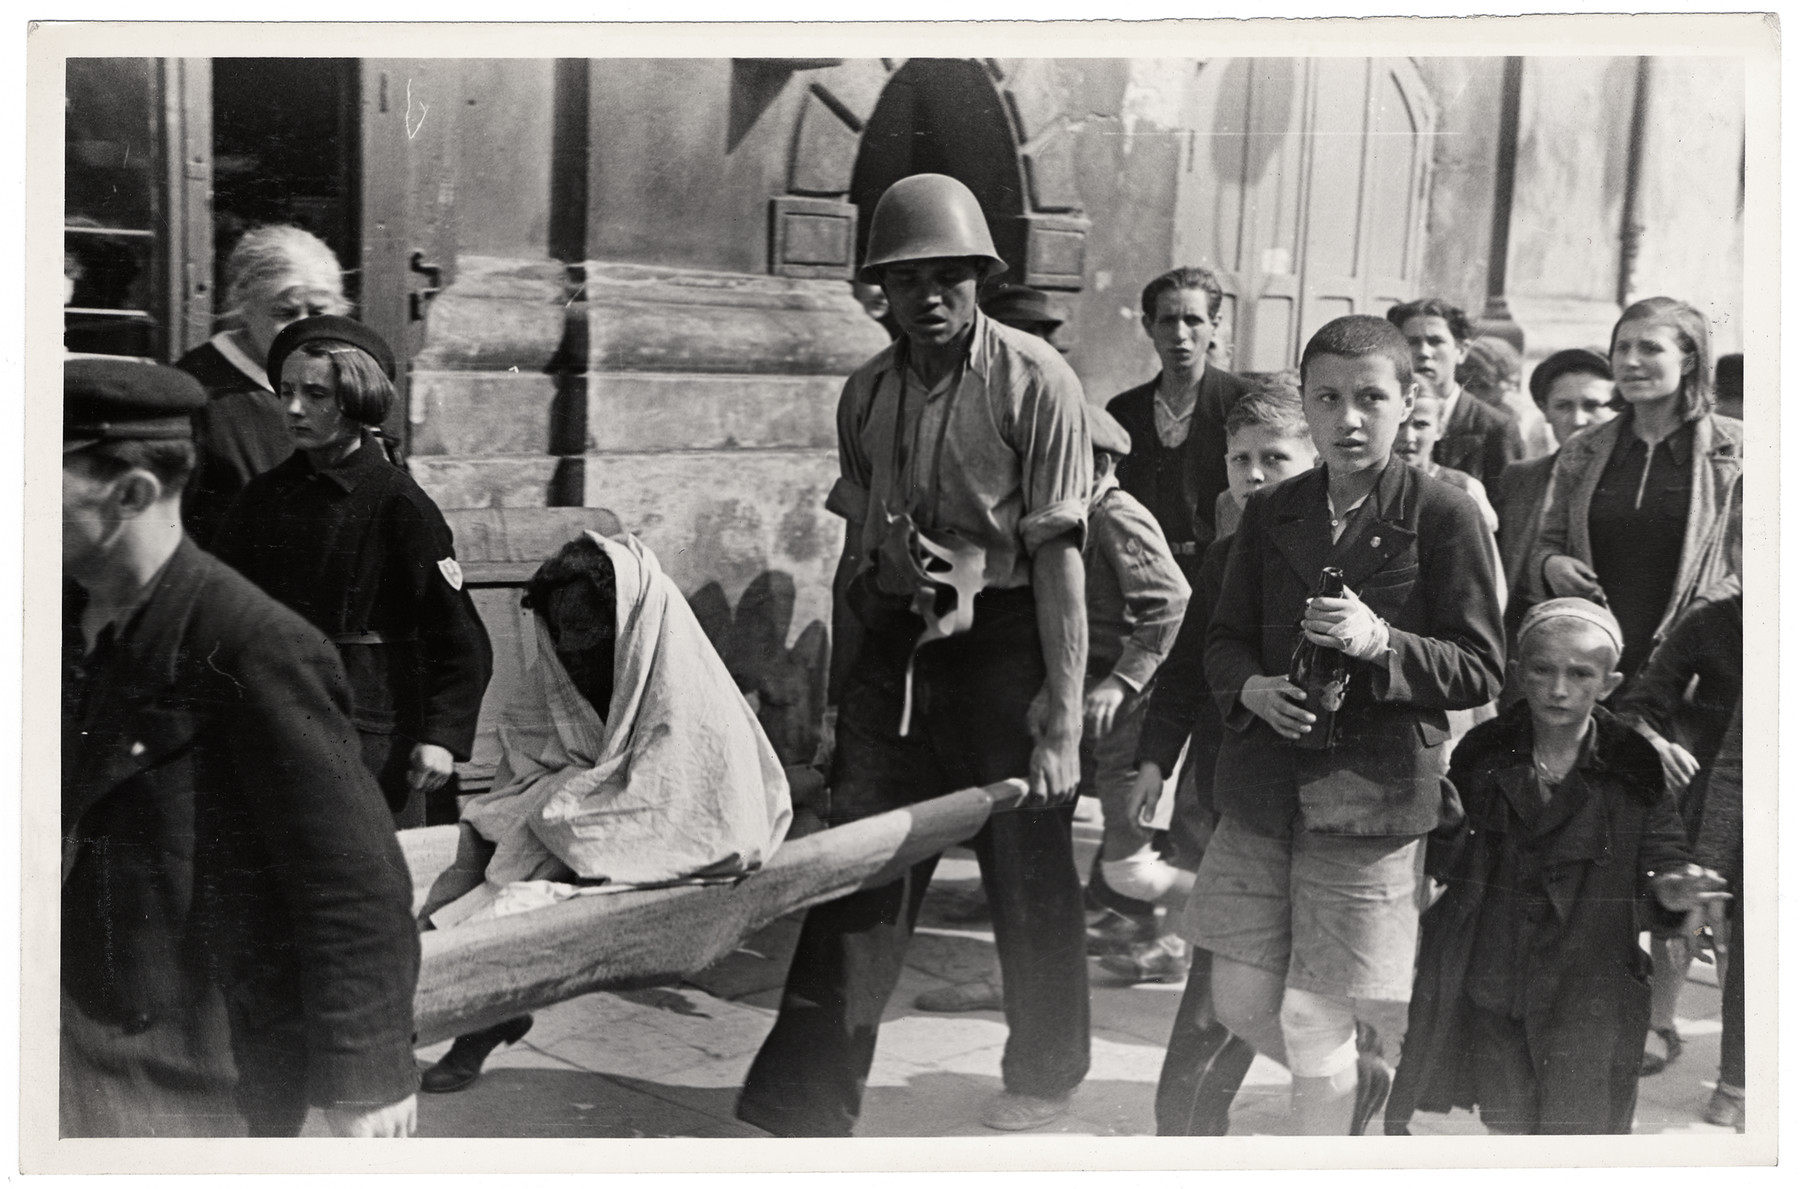 Polish civilians and soldiers evacuate the wounded in besieged Warsaw.